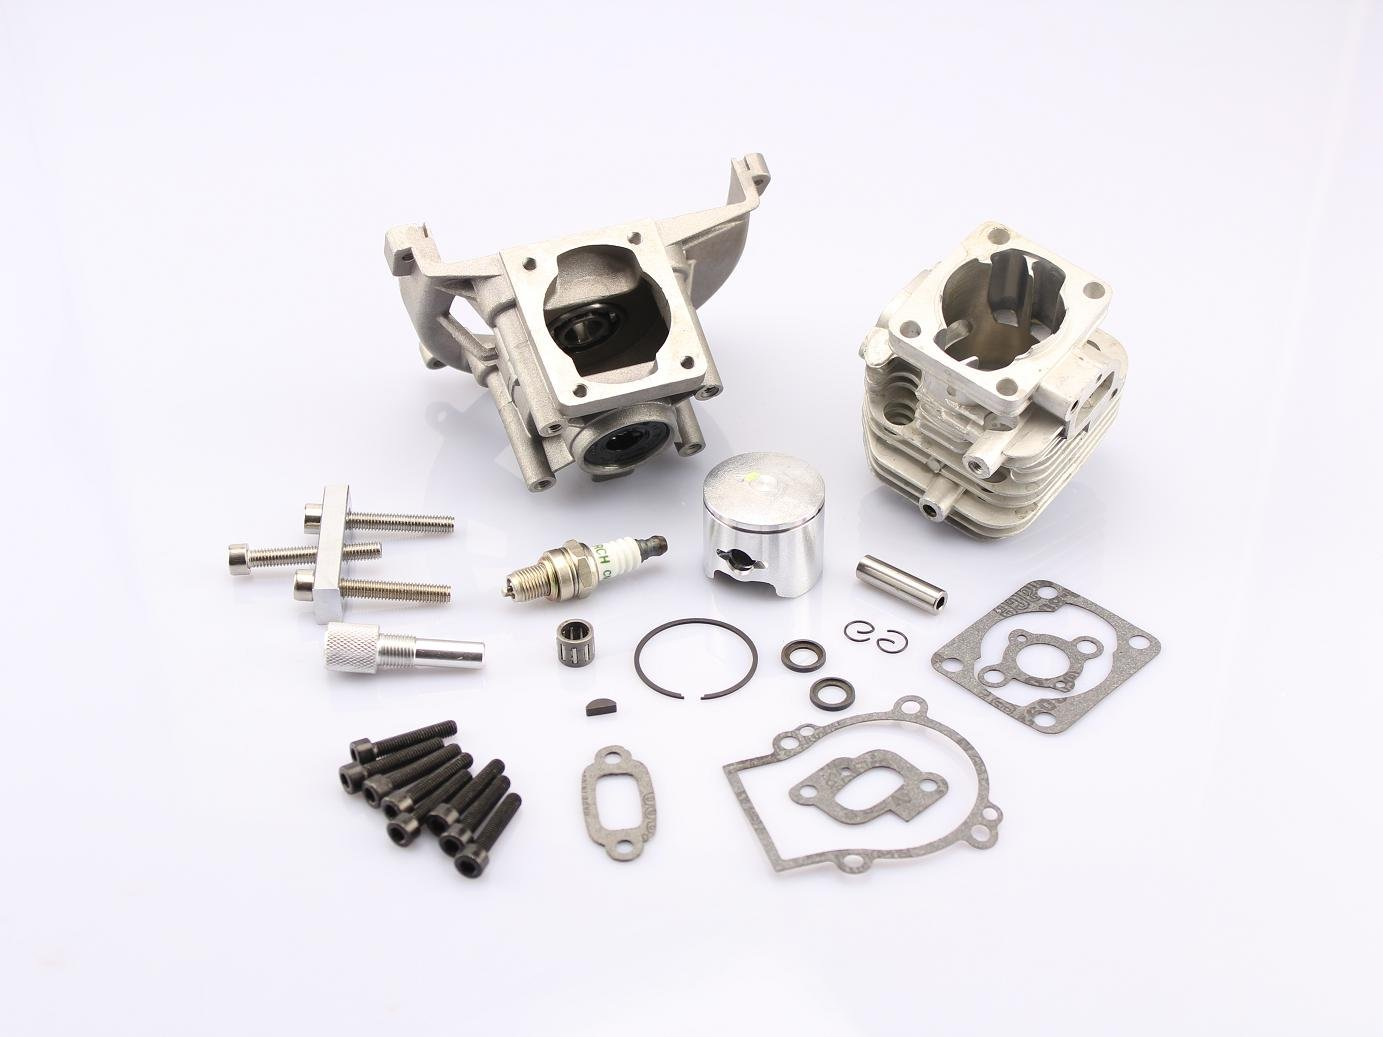 29CC four-point fixed engine parts kit for 1/5 baja HPI KM 5B 5T 5SC rc car baja parts 2 change 4 bolt engine 30 5cc big bore upgrade kit for 1 5 hpi baja 5b 5t km